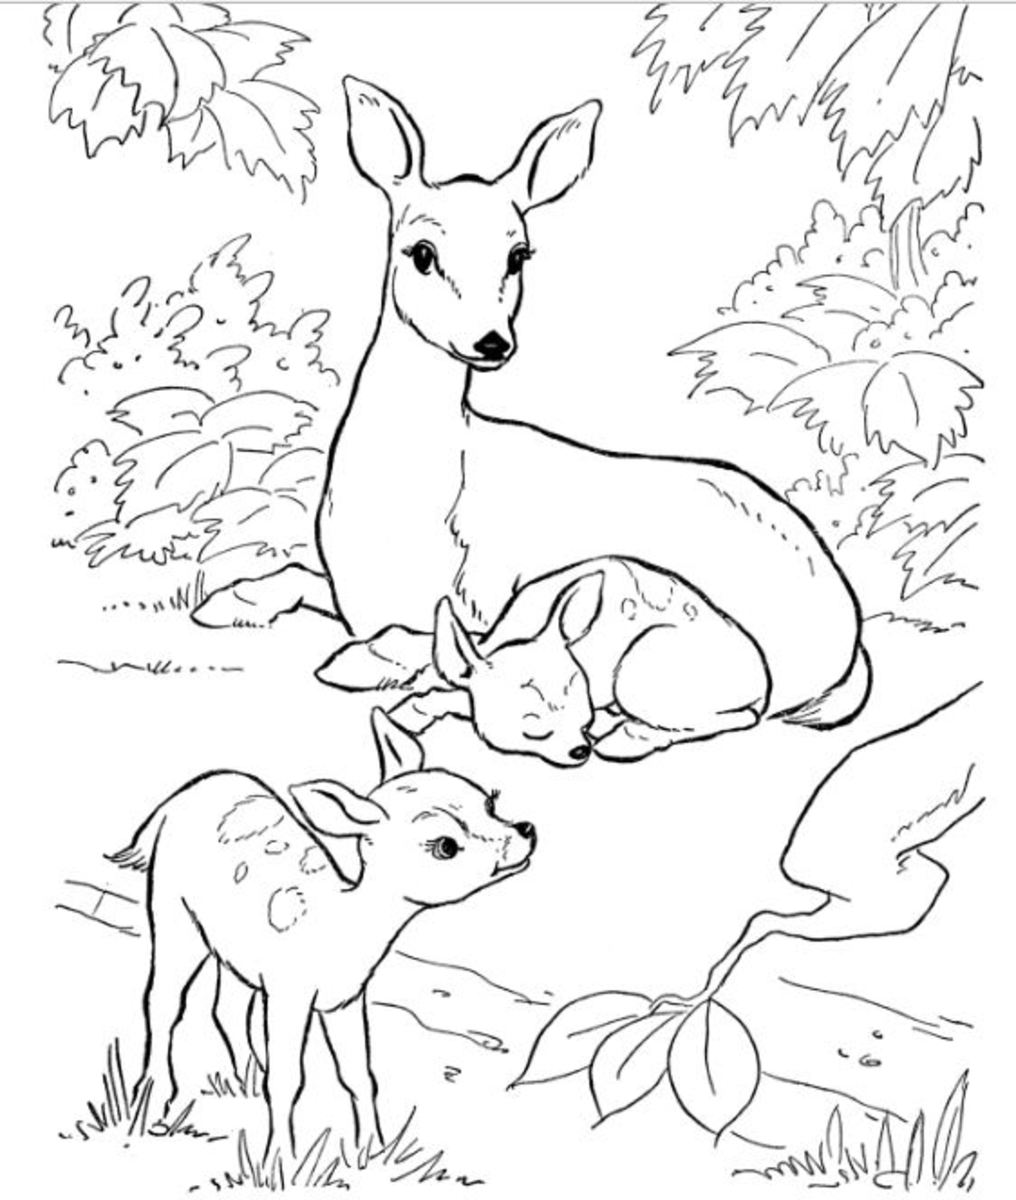 colouring pages of nature nature scenes drawing at getdrawings free download pages colouring nature of